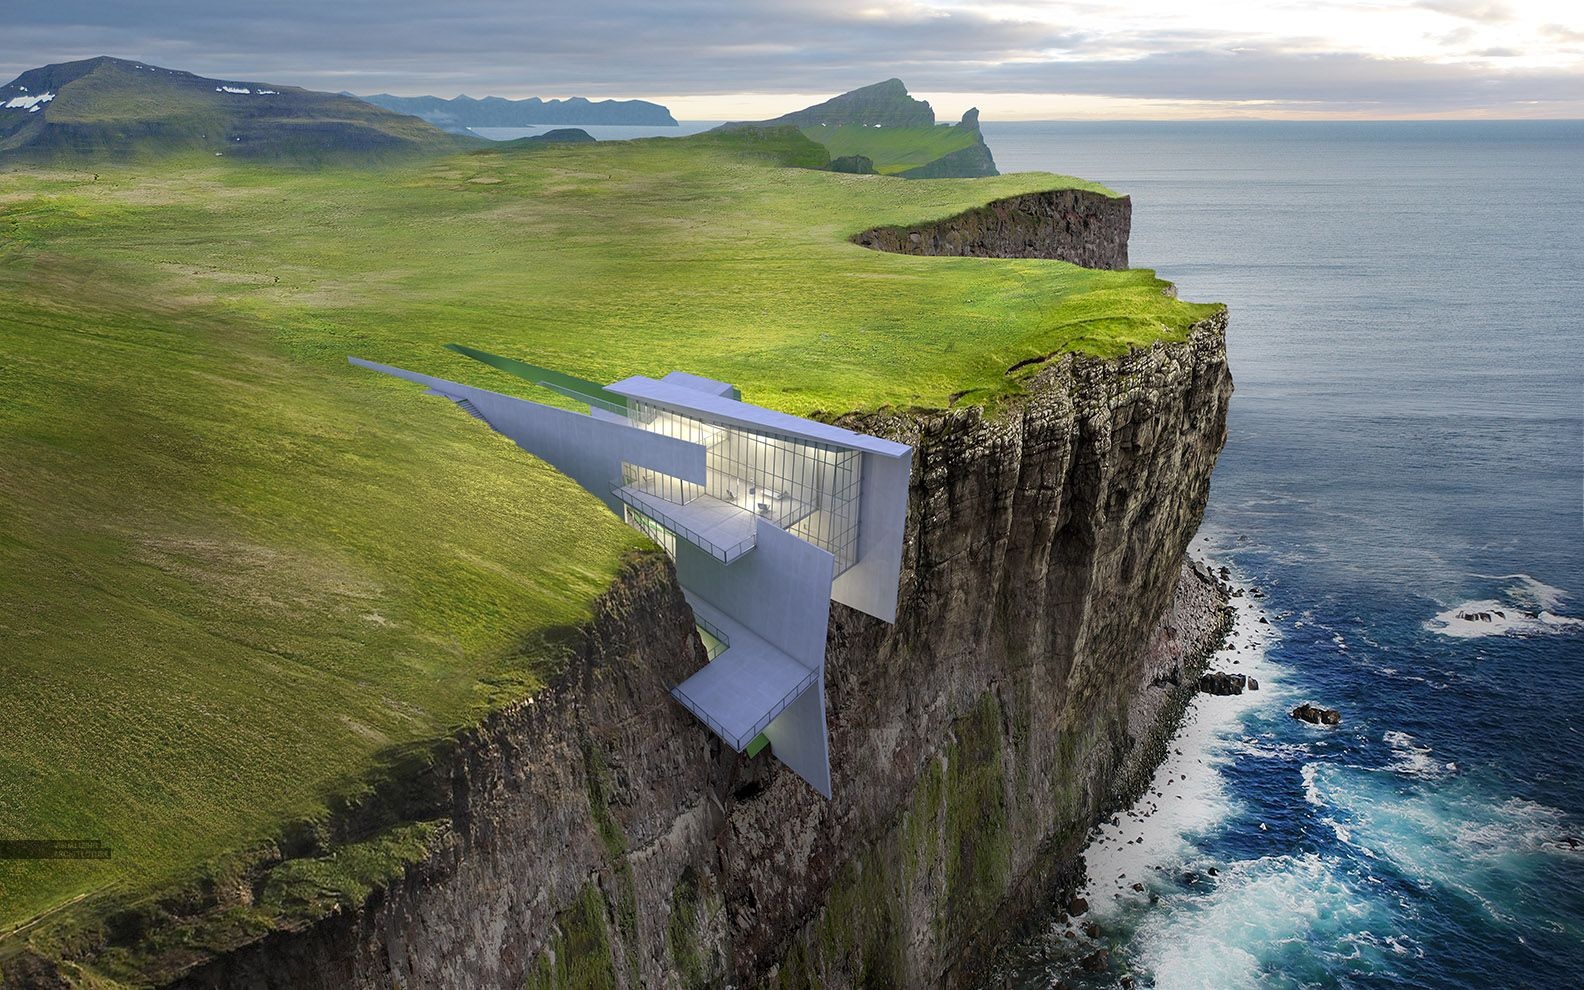 Incredibly Compelling Cliffside House By Visualizing Architecture - This architects stunning concept home hangs from a cliffside in iceland